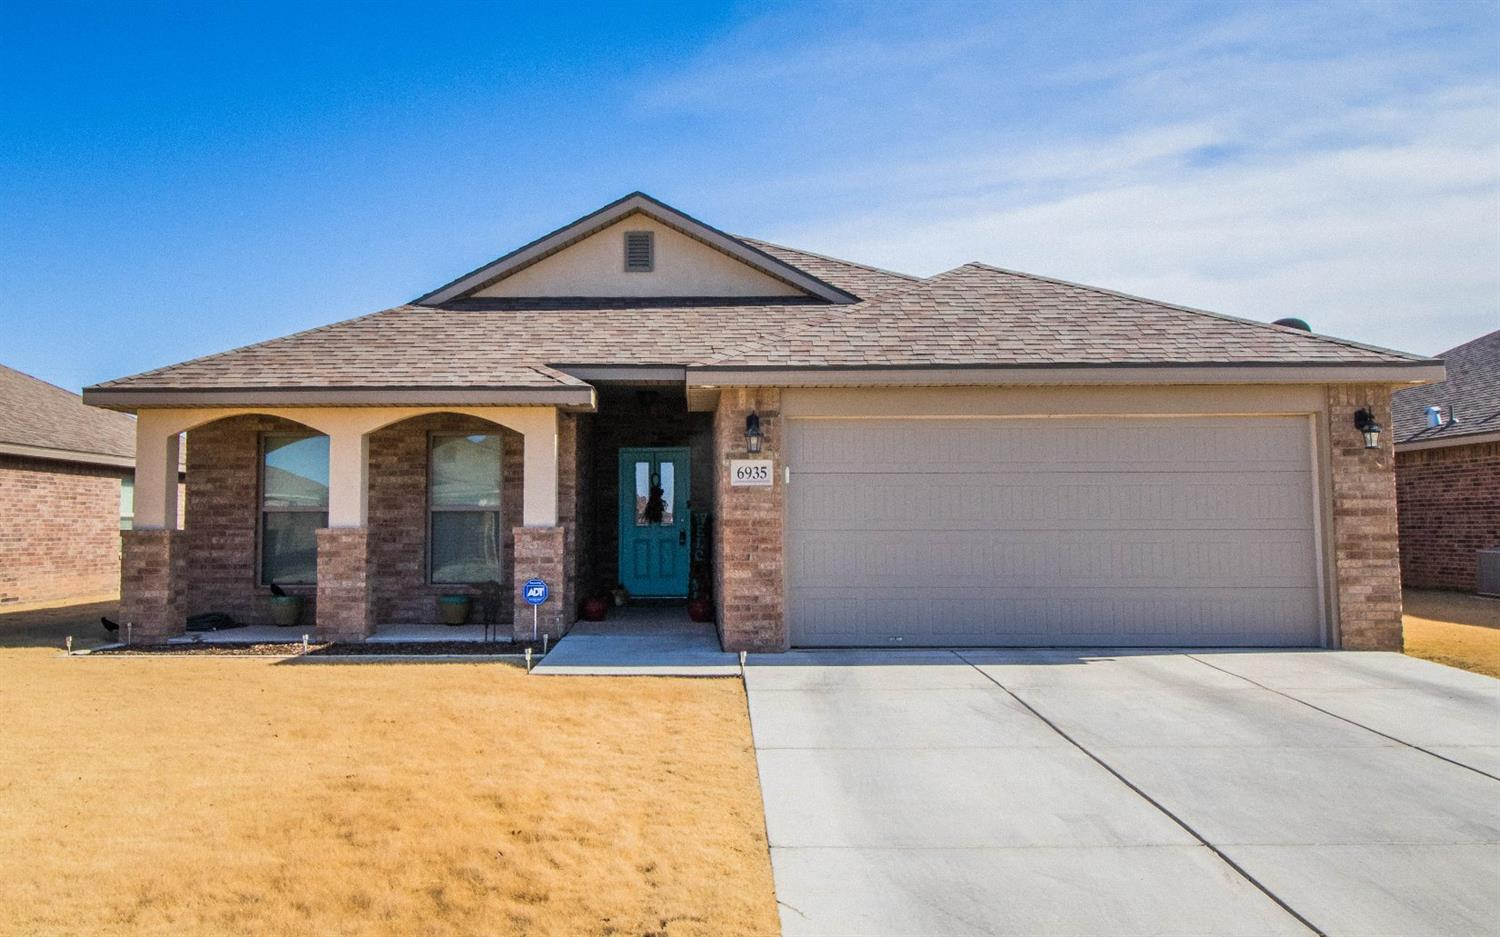 6935 37th Street, Lubbock in Lubbock County, TX 79407 Home for Sale